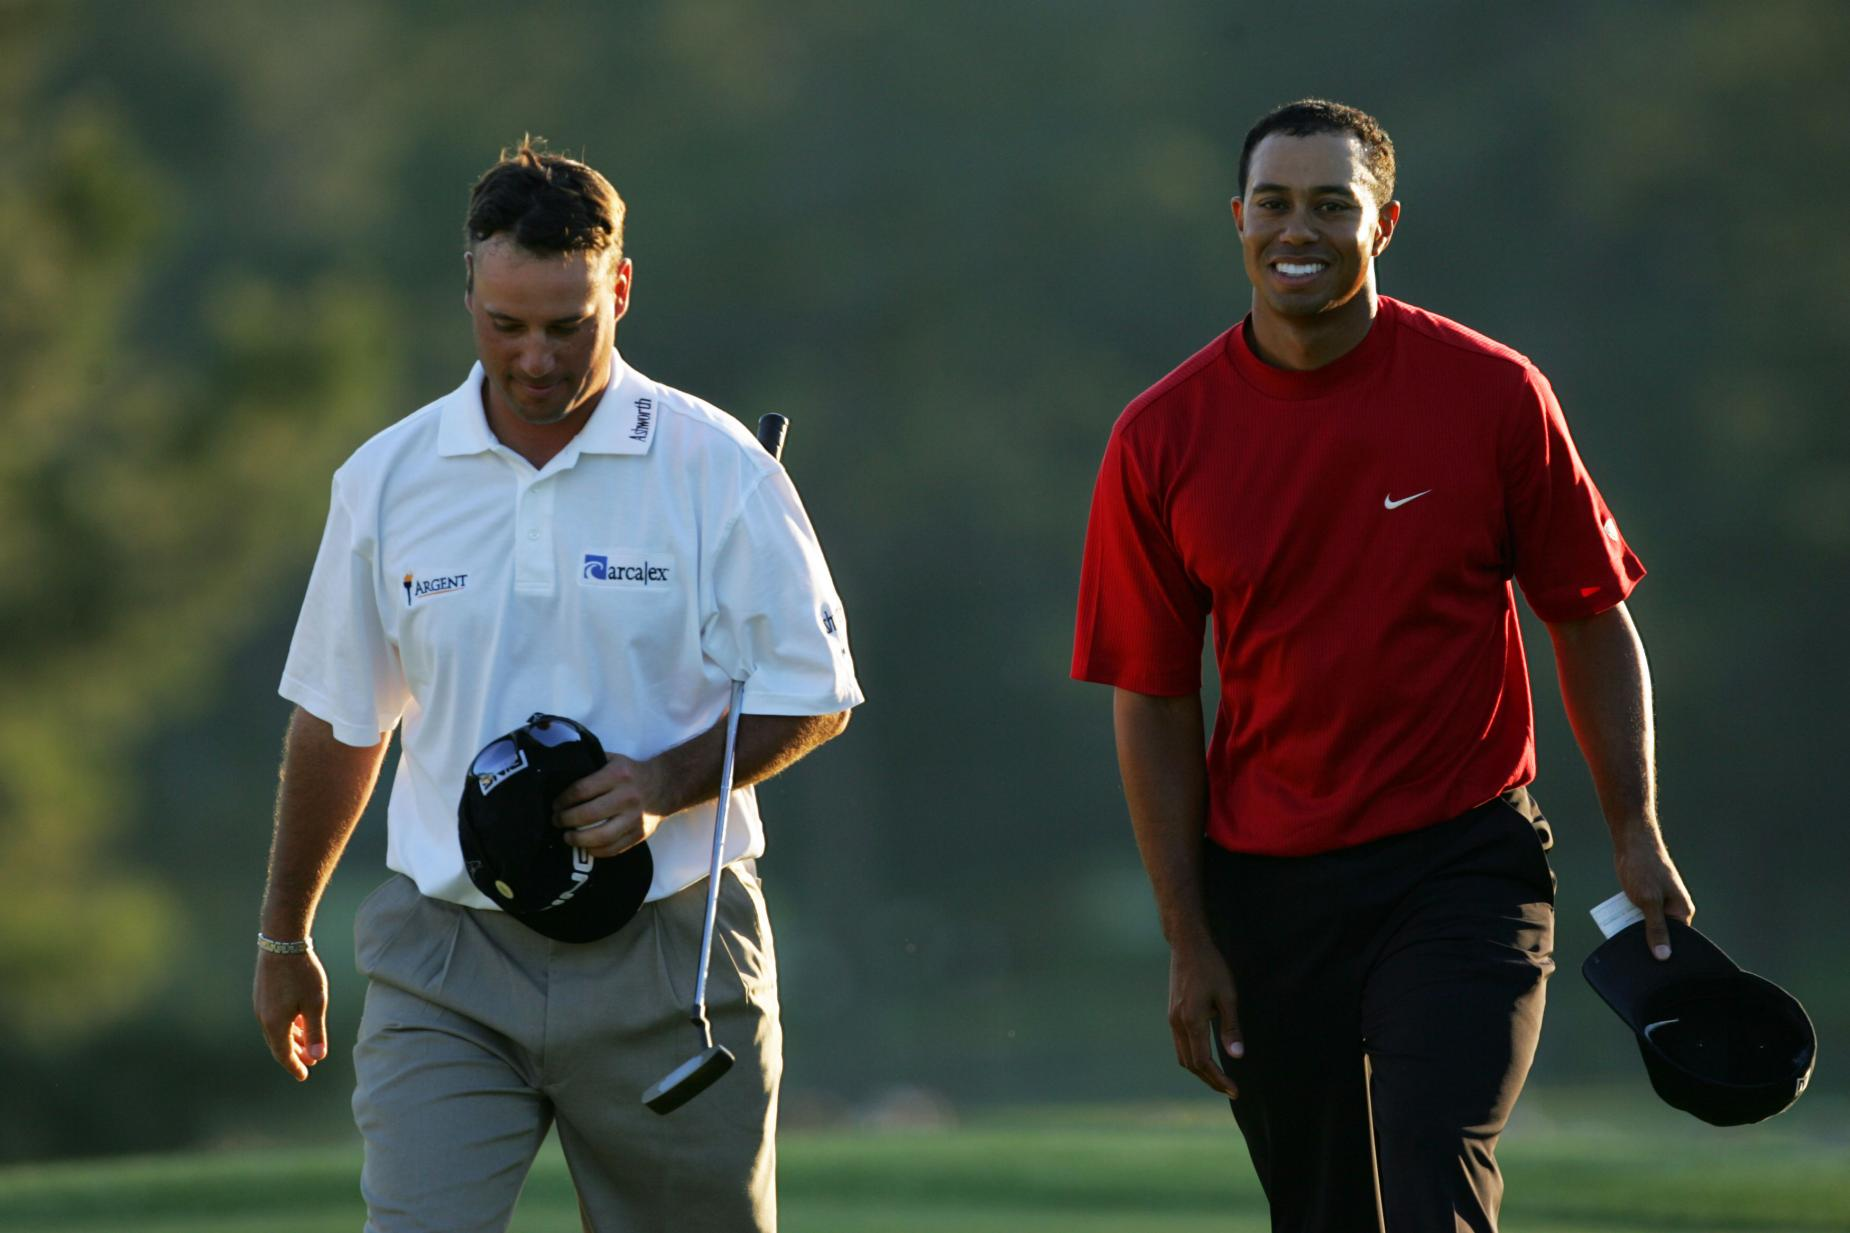 tiger-woods-2005-masters-walking-off-chris-dimarco.jpg